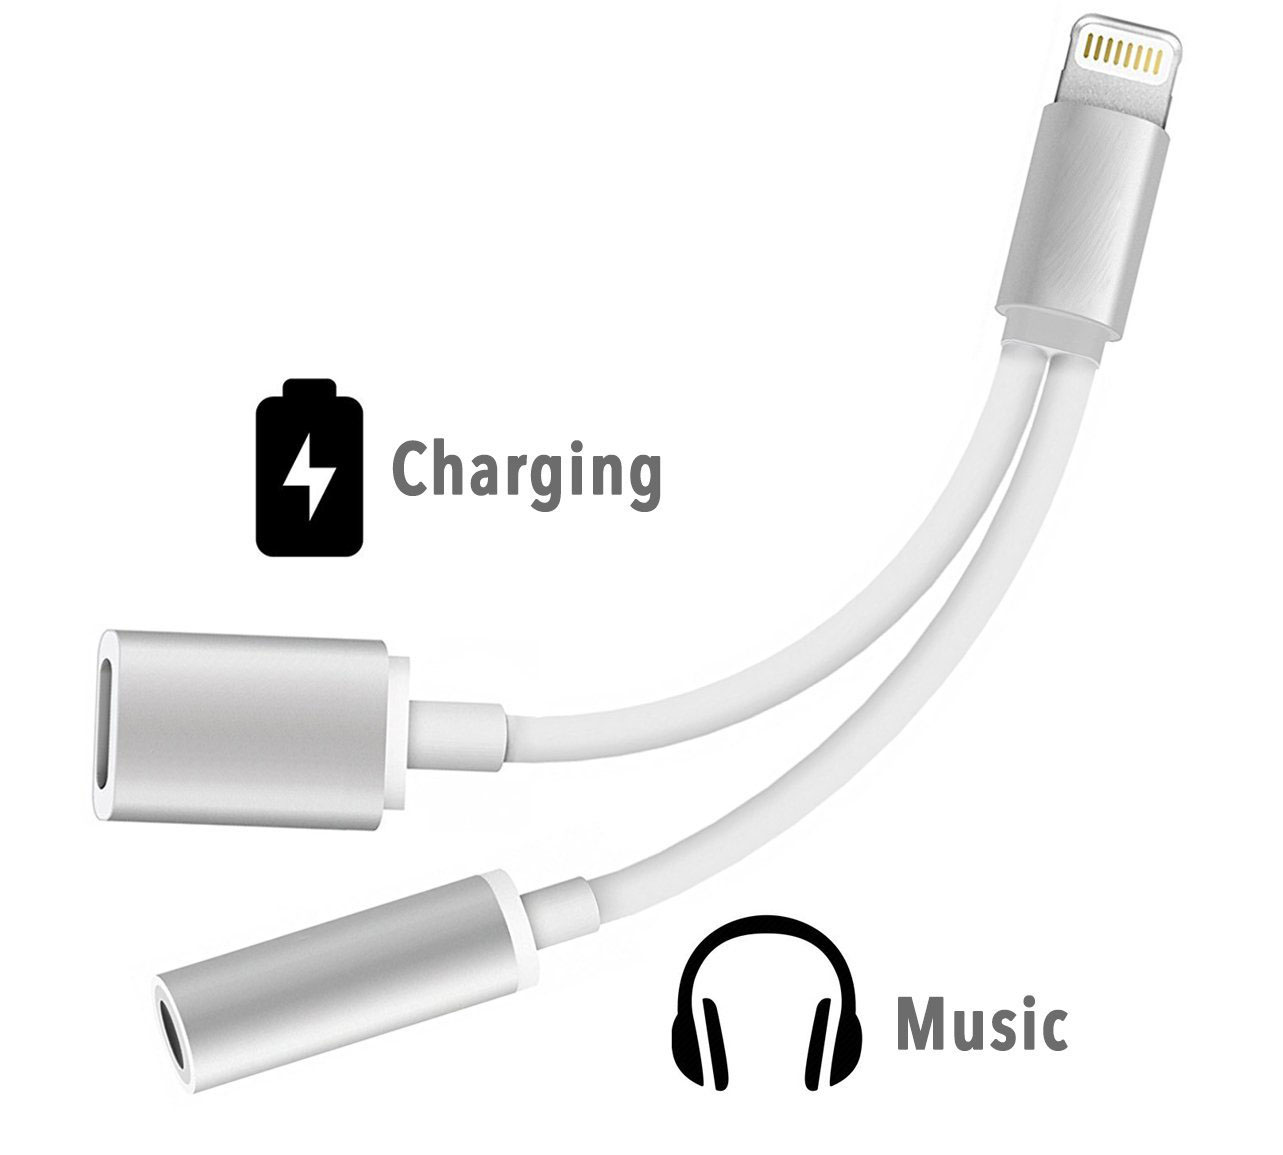 Soultronic 2-in-1 Silver/White Lightning --> 3.5mm Audio Jack Adapter & Lightning Charge (Φορτίστε | Ακούστε Μουσική)